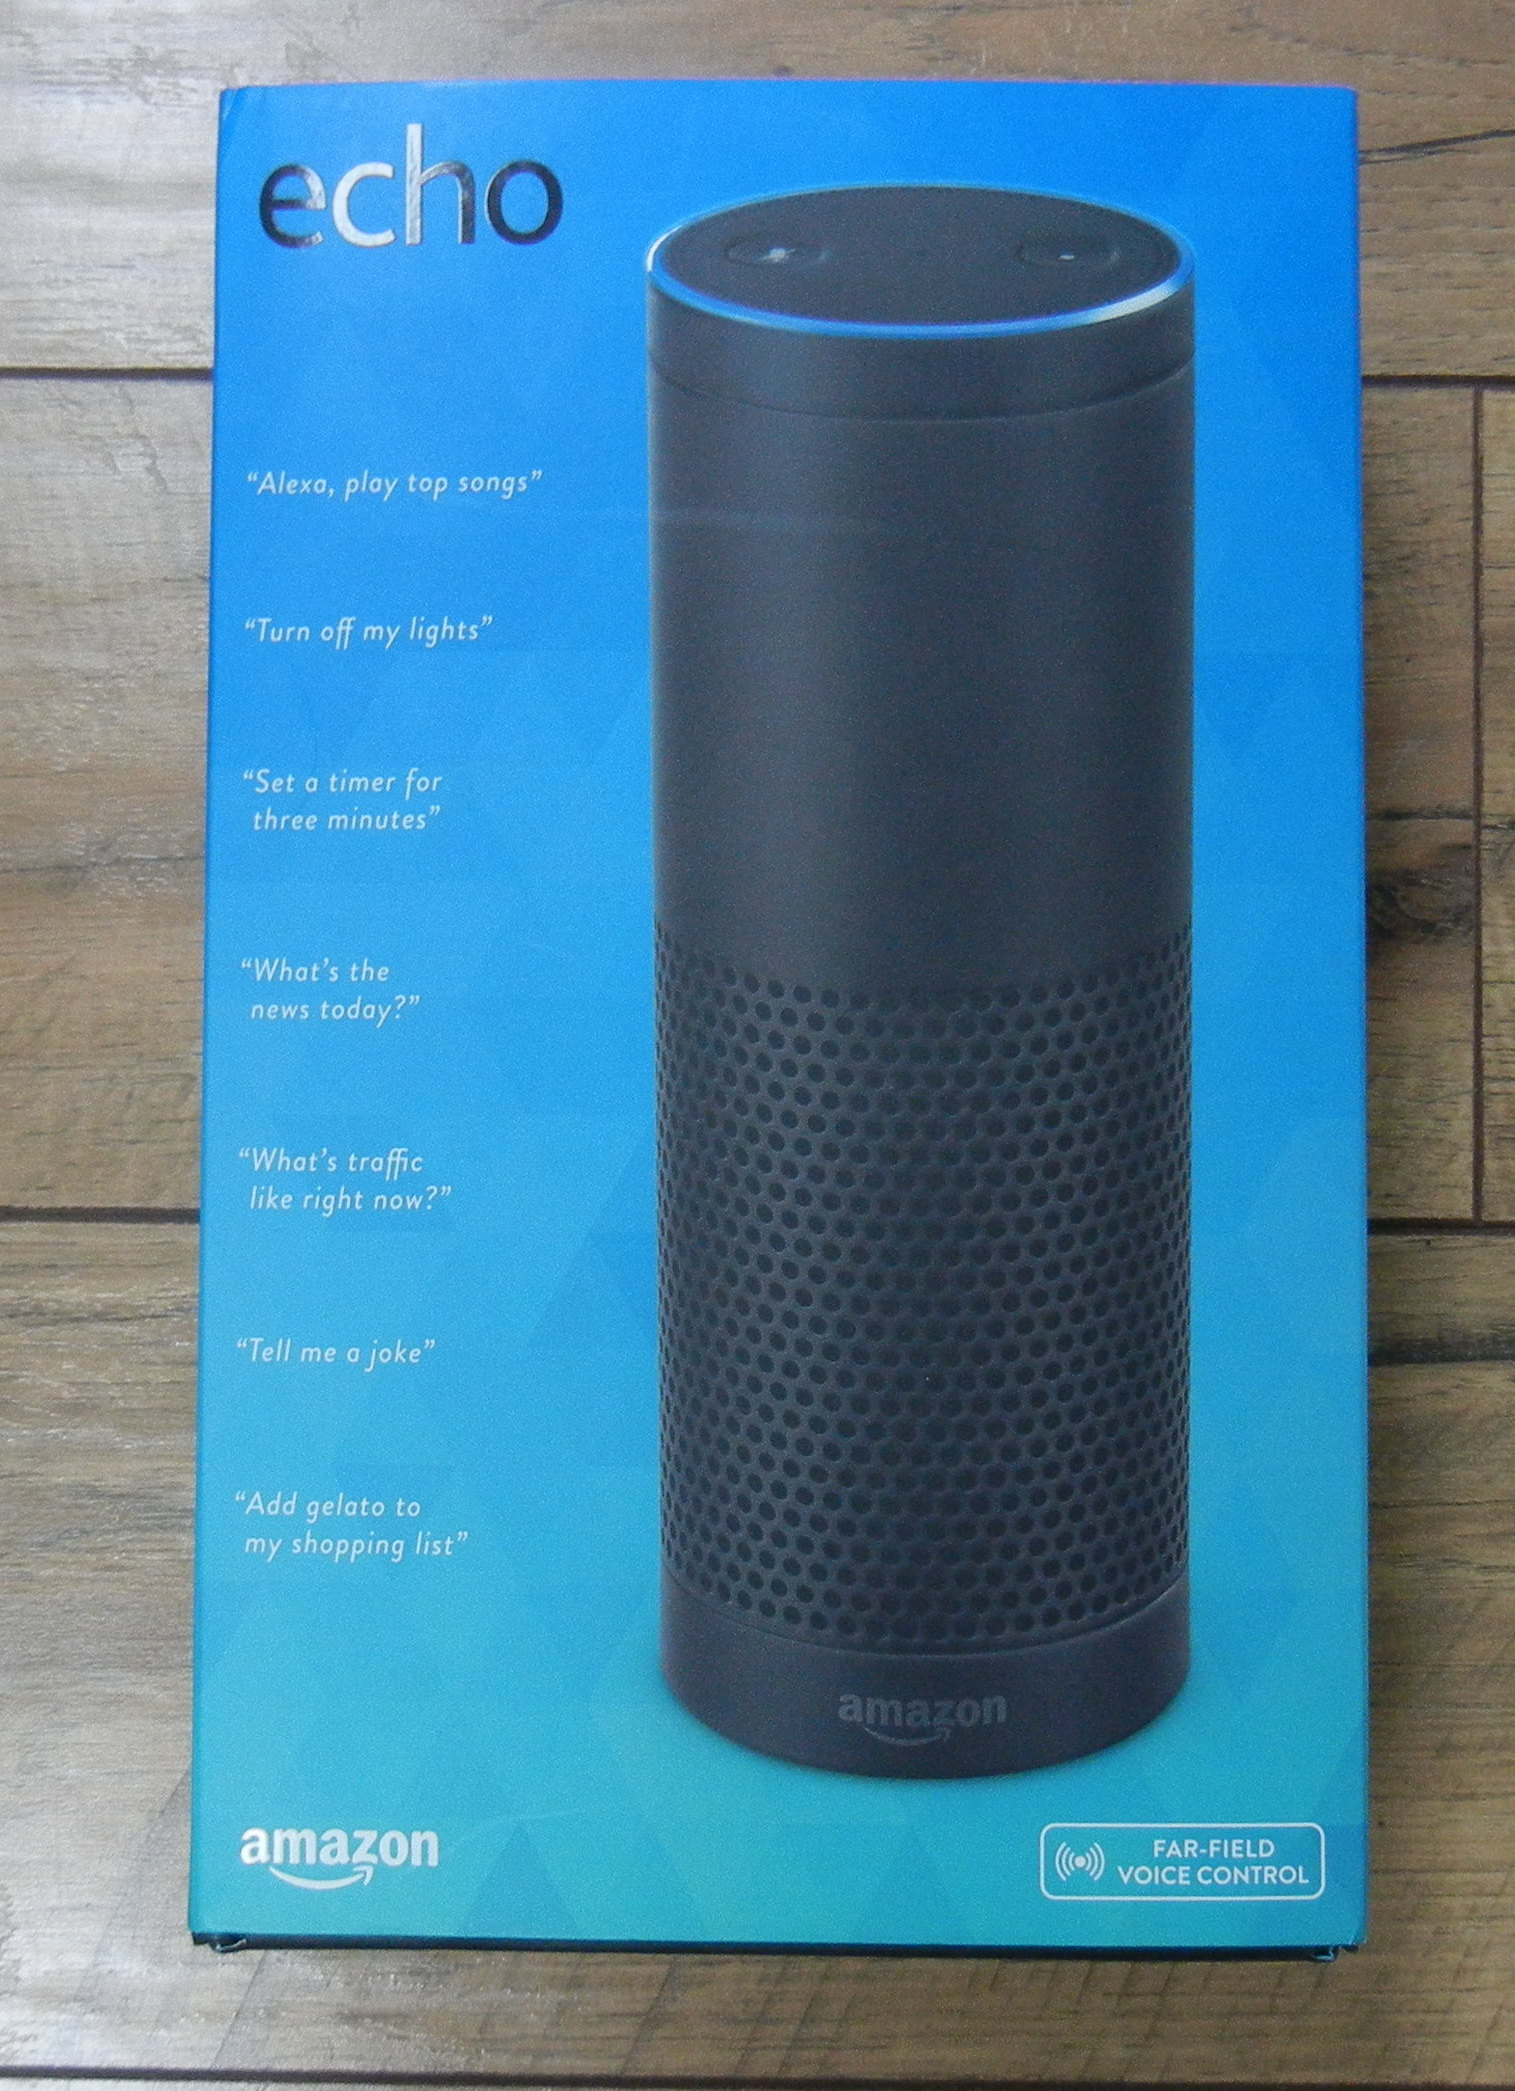 AMAZON - ALEXA - ECHO 2ND GEN - SPEAKER